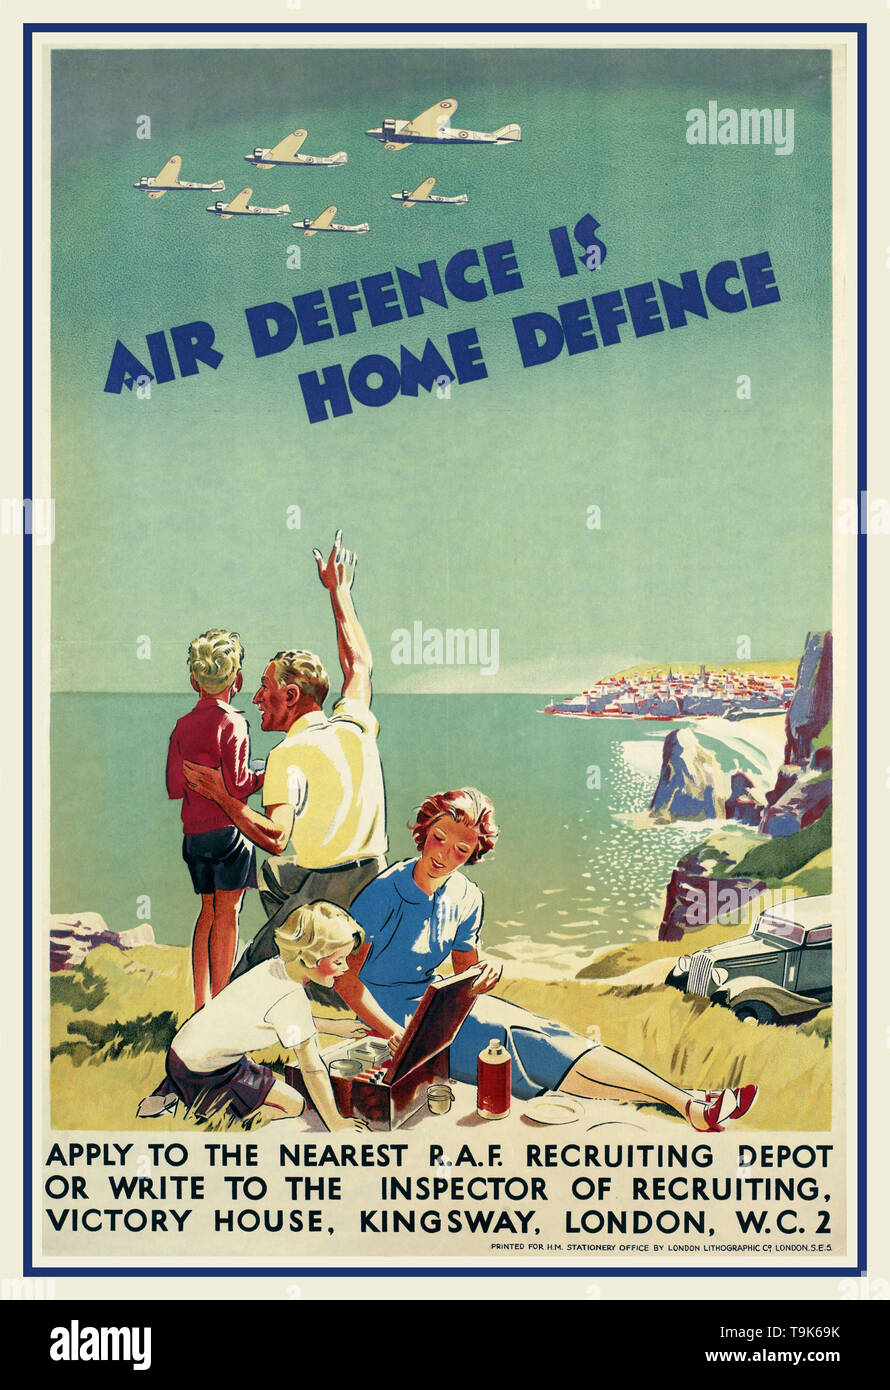 "Vintage 1940's  WW2 Propaganda recruiting poster for the RAF  'Air Defence is Home Defence' Family having a picnic on a cliff top by the sea. The mother and daughter sit with a hamper, while the father points out to his son six RAF aircraft passing in formation overhead. The family's car is parked in the background, and a small town is visible in the distance across the bay. ""AIR DEFENCE IS HOME DEFENCE""  APPLY TO THE NEAREST R.A.F. RECRUITING DEPOT OR WRITE TO INSPECTOR OF RECRUITING, VICTORY HOUSE, KINGSWAY, LONDON, W.C.2 PRINTED FOR H.M. STATIONERY OFFICE - Stock Image"